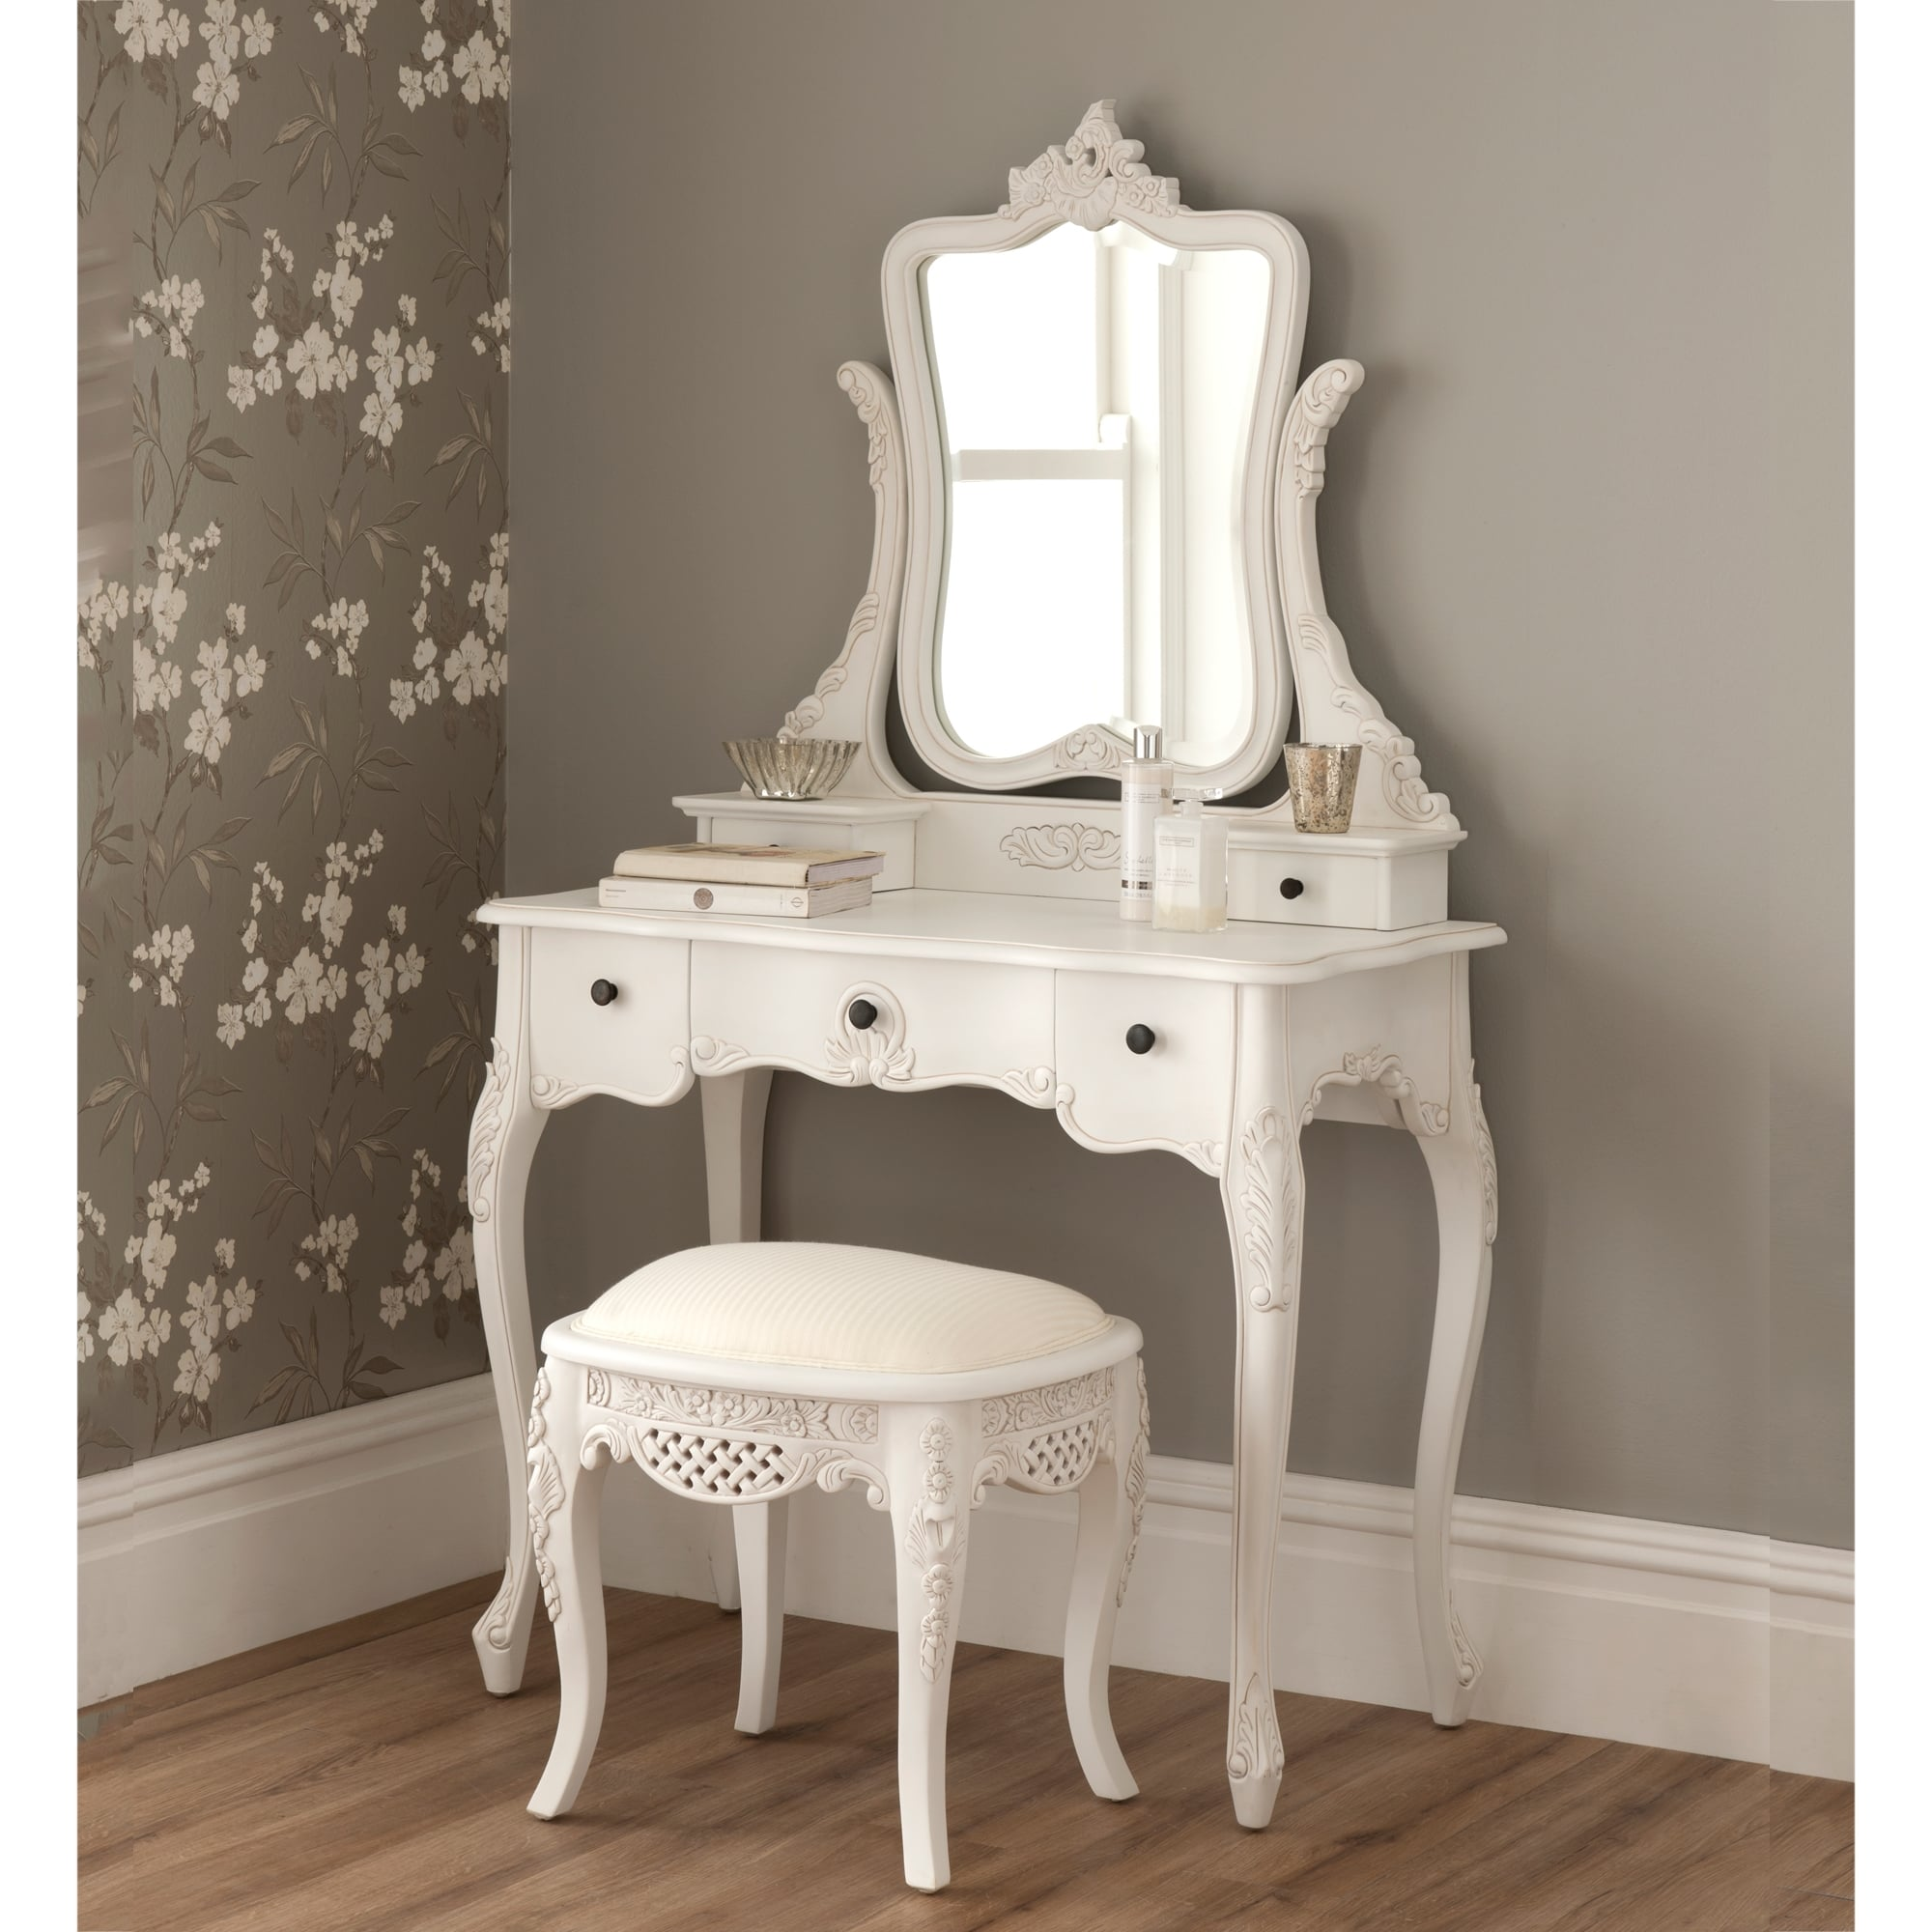 la rochelle antique french dressing table set OXLVTNC